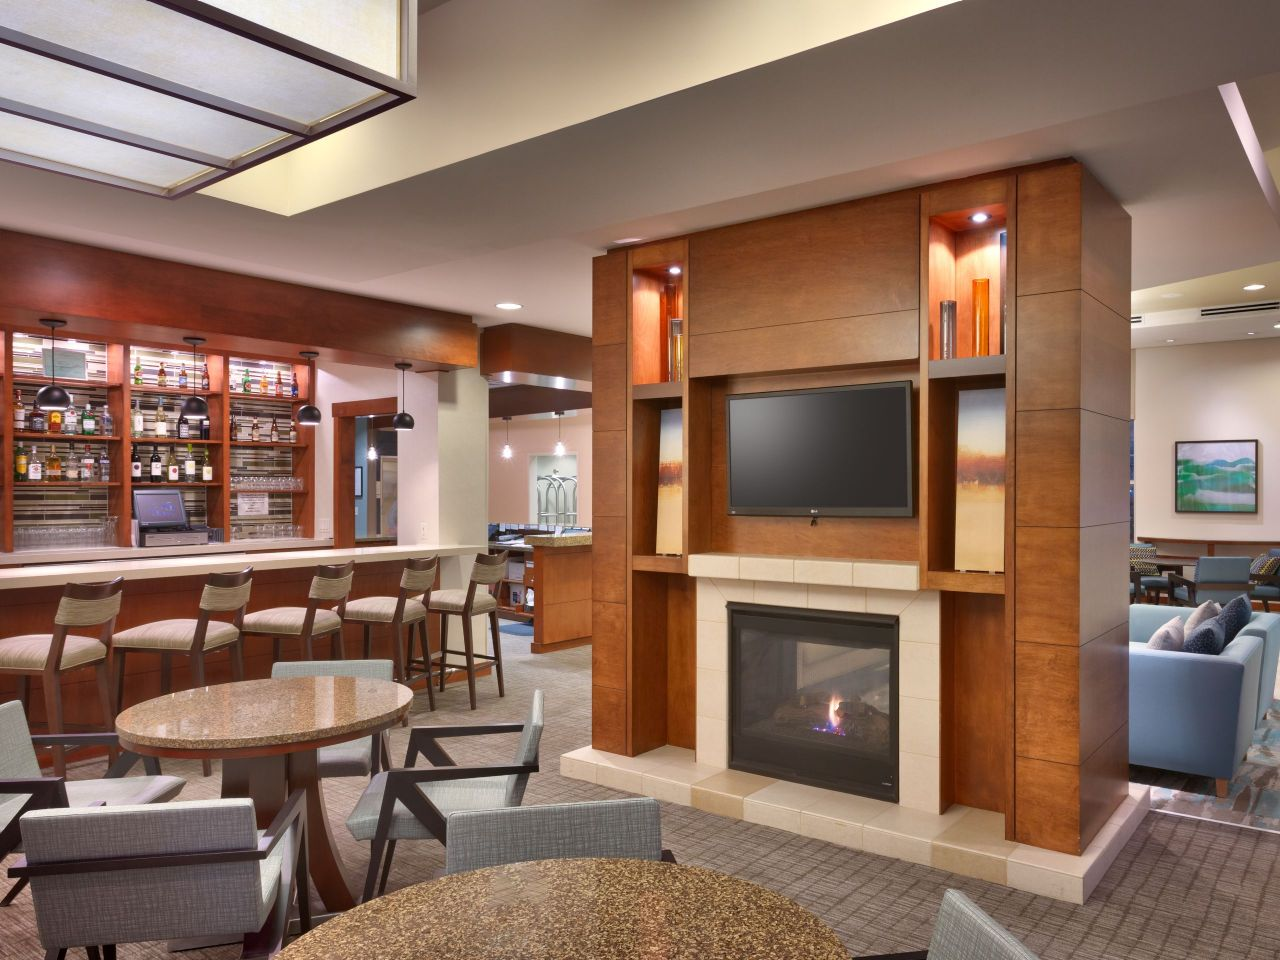 Hyatt House Lobby Fireplace